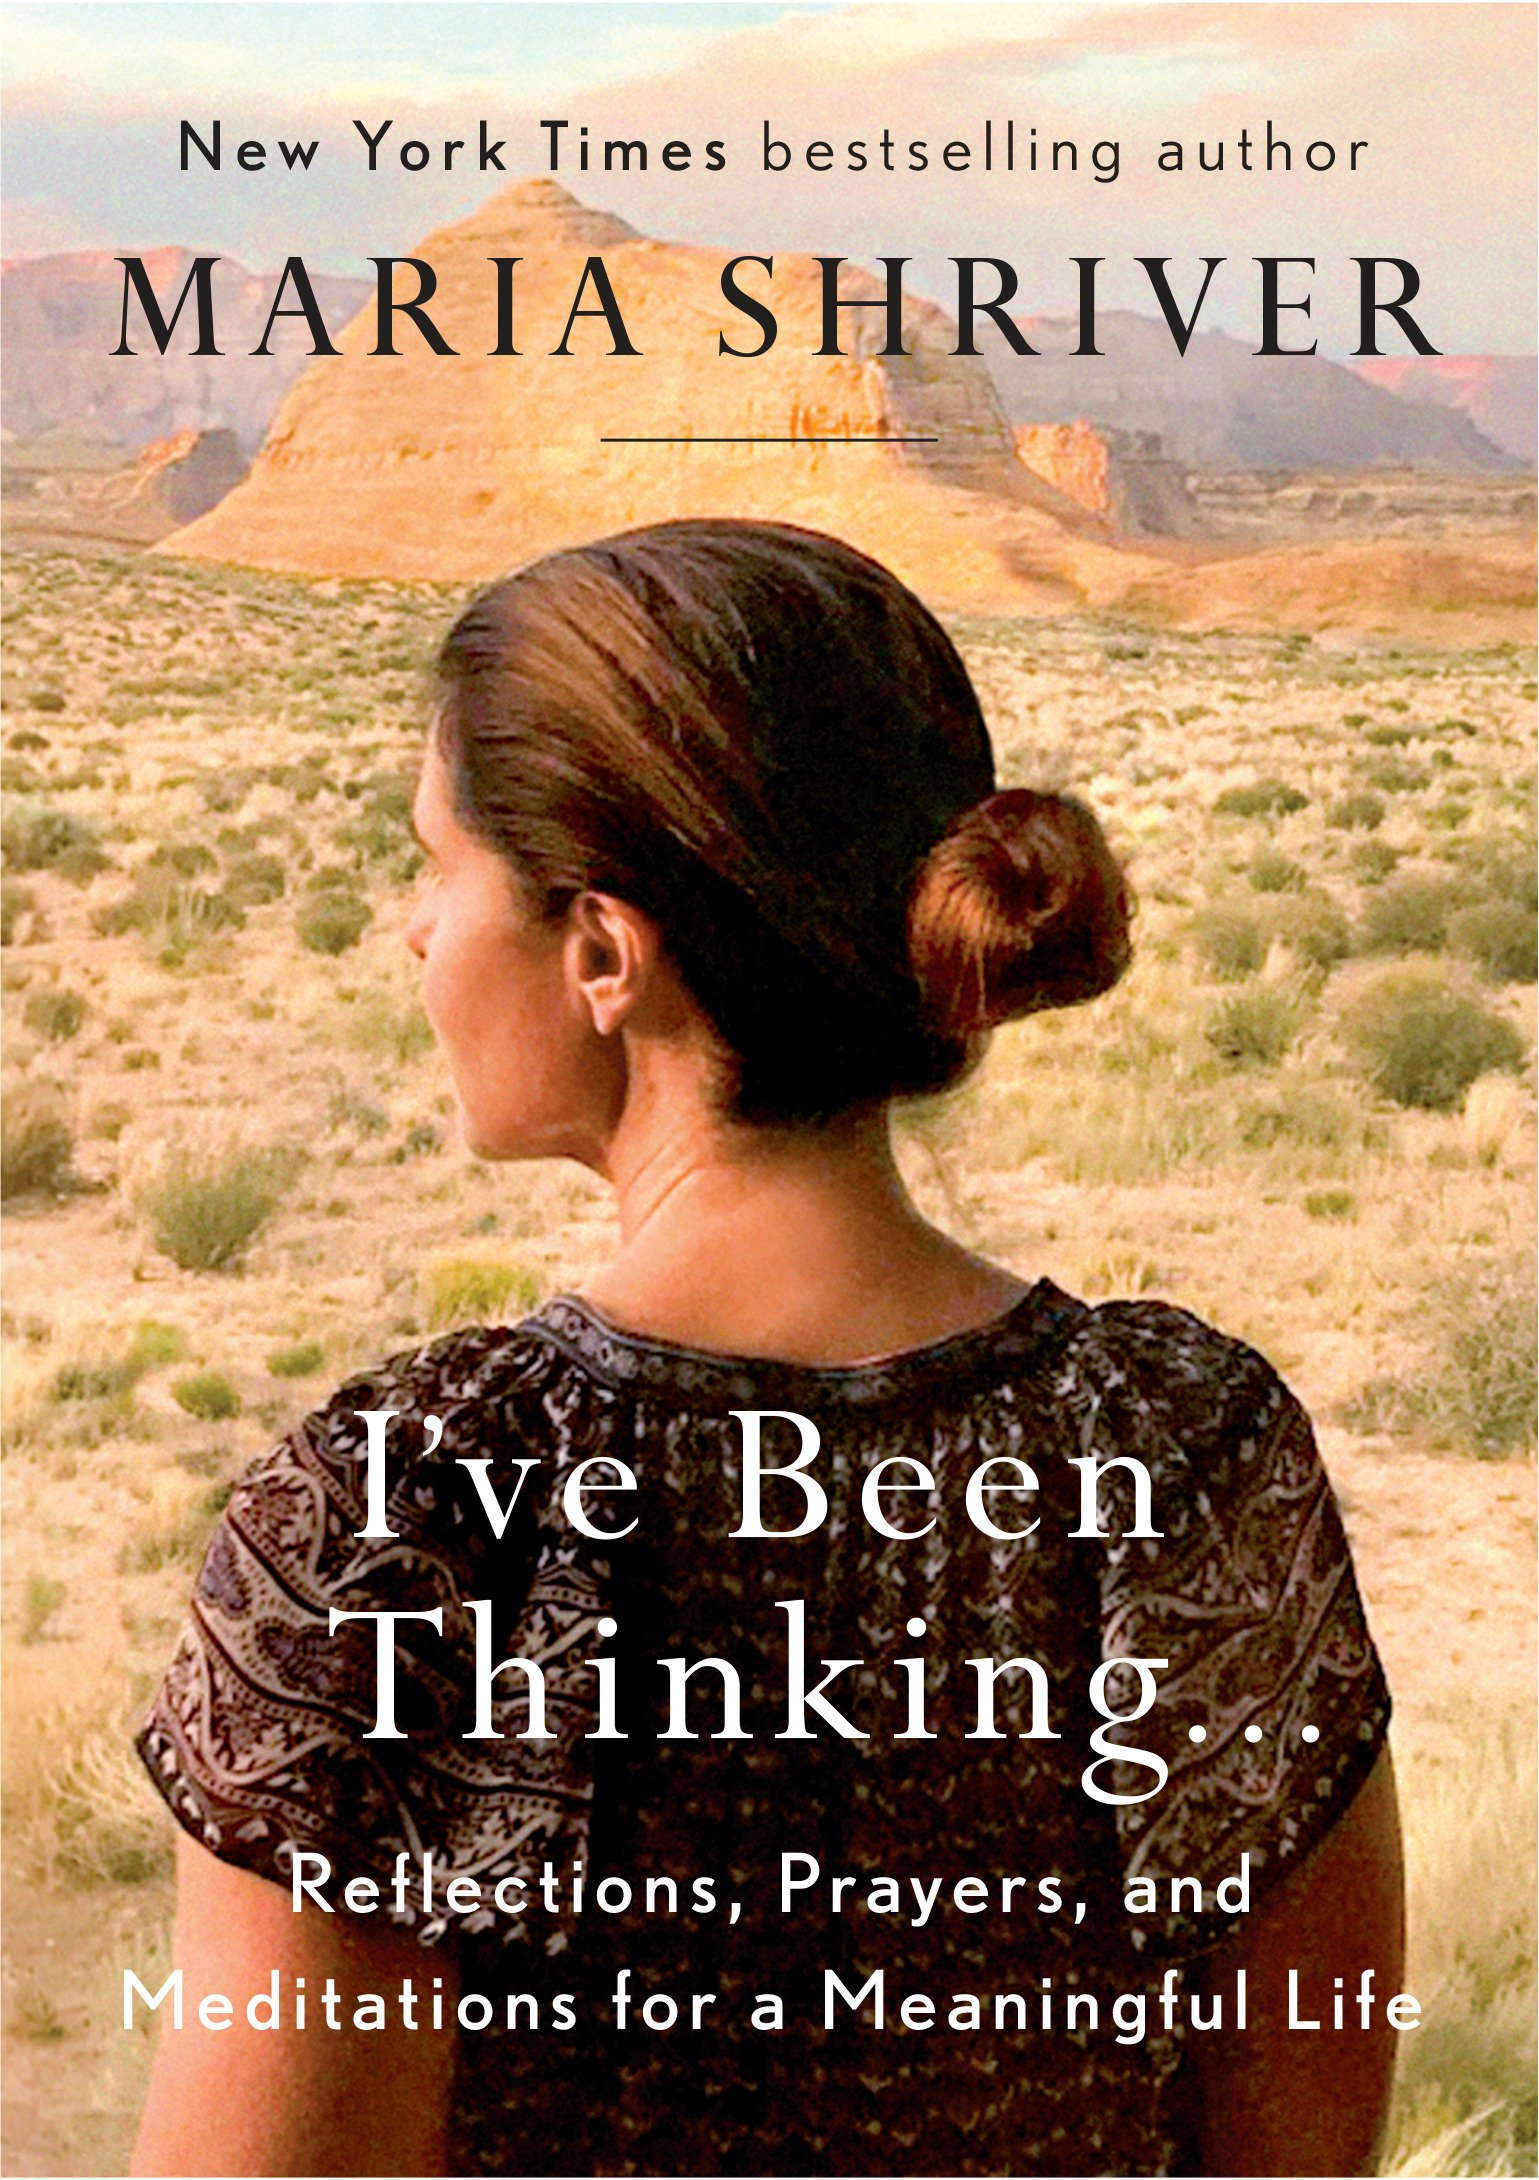 .: Reflections 【2018】by Maria Shriver Author Ive Been Thinking Hardcover and Meditations for a Meaningful Life Prayers Hardcover By Maria Shriver